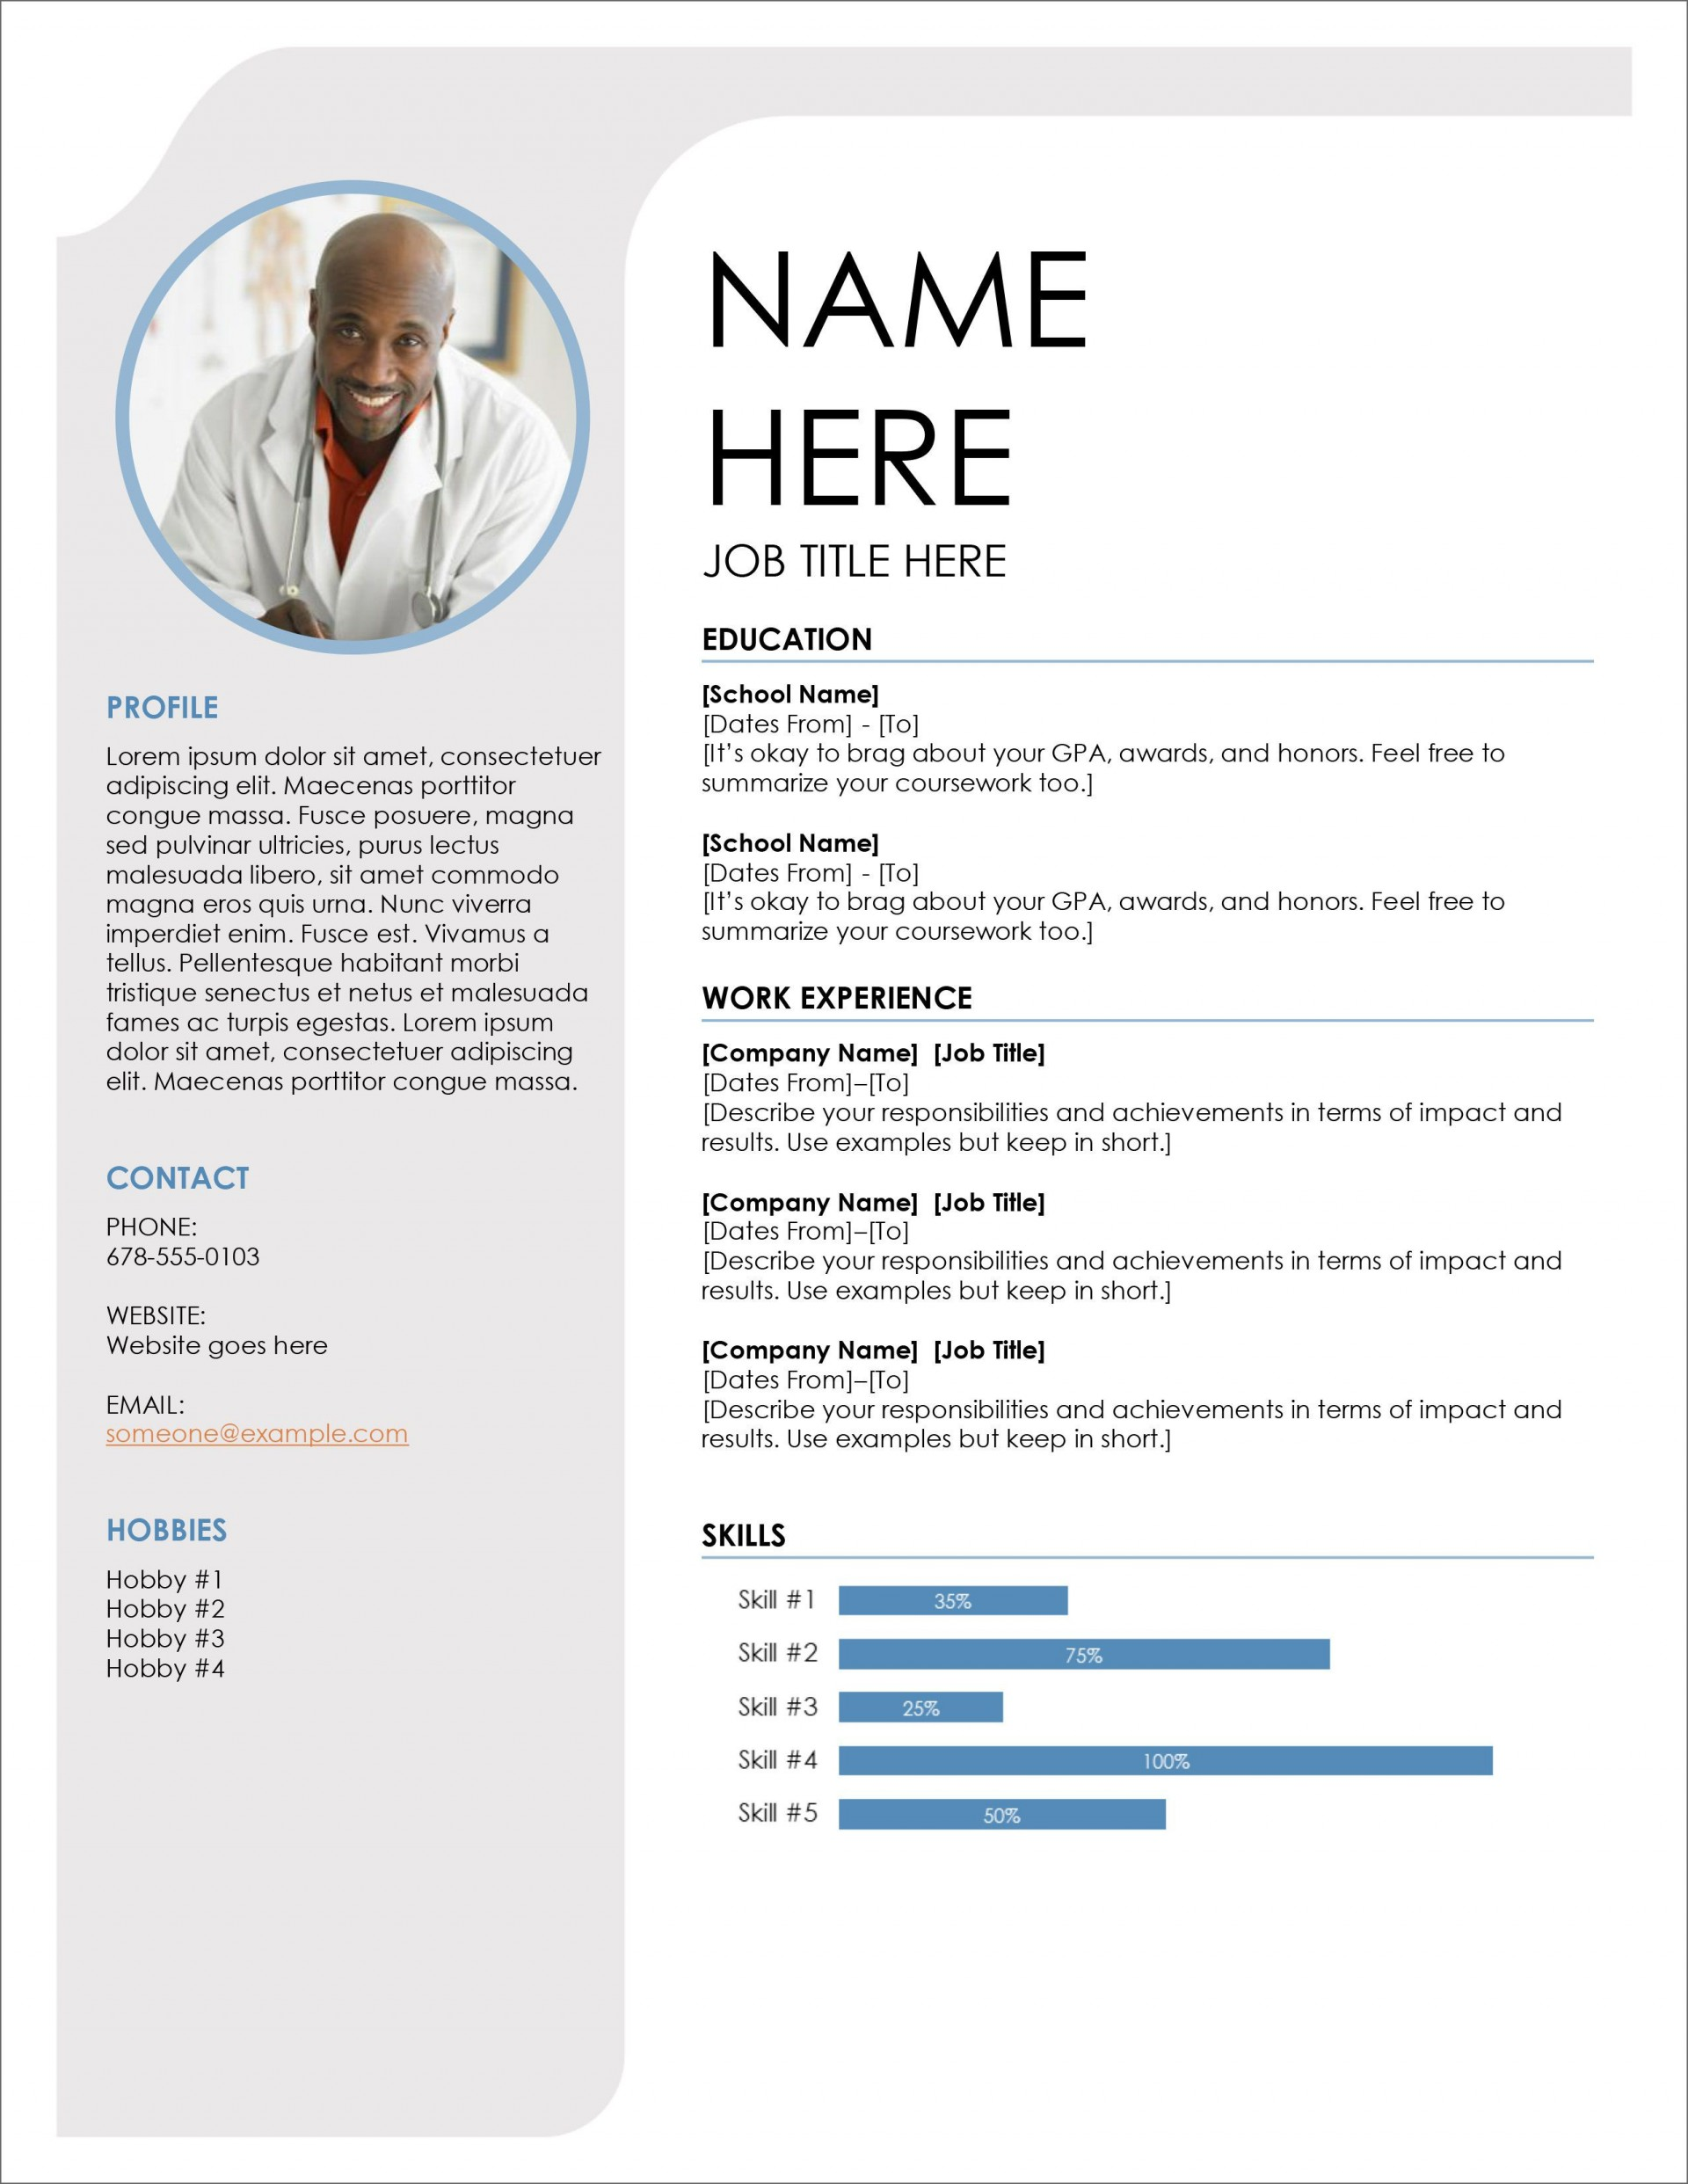 007 Marvelou Resume Template Download Word Image  Cv Free 2019 Example File1920